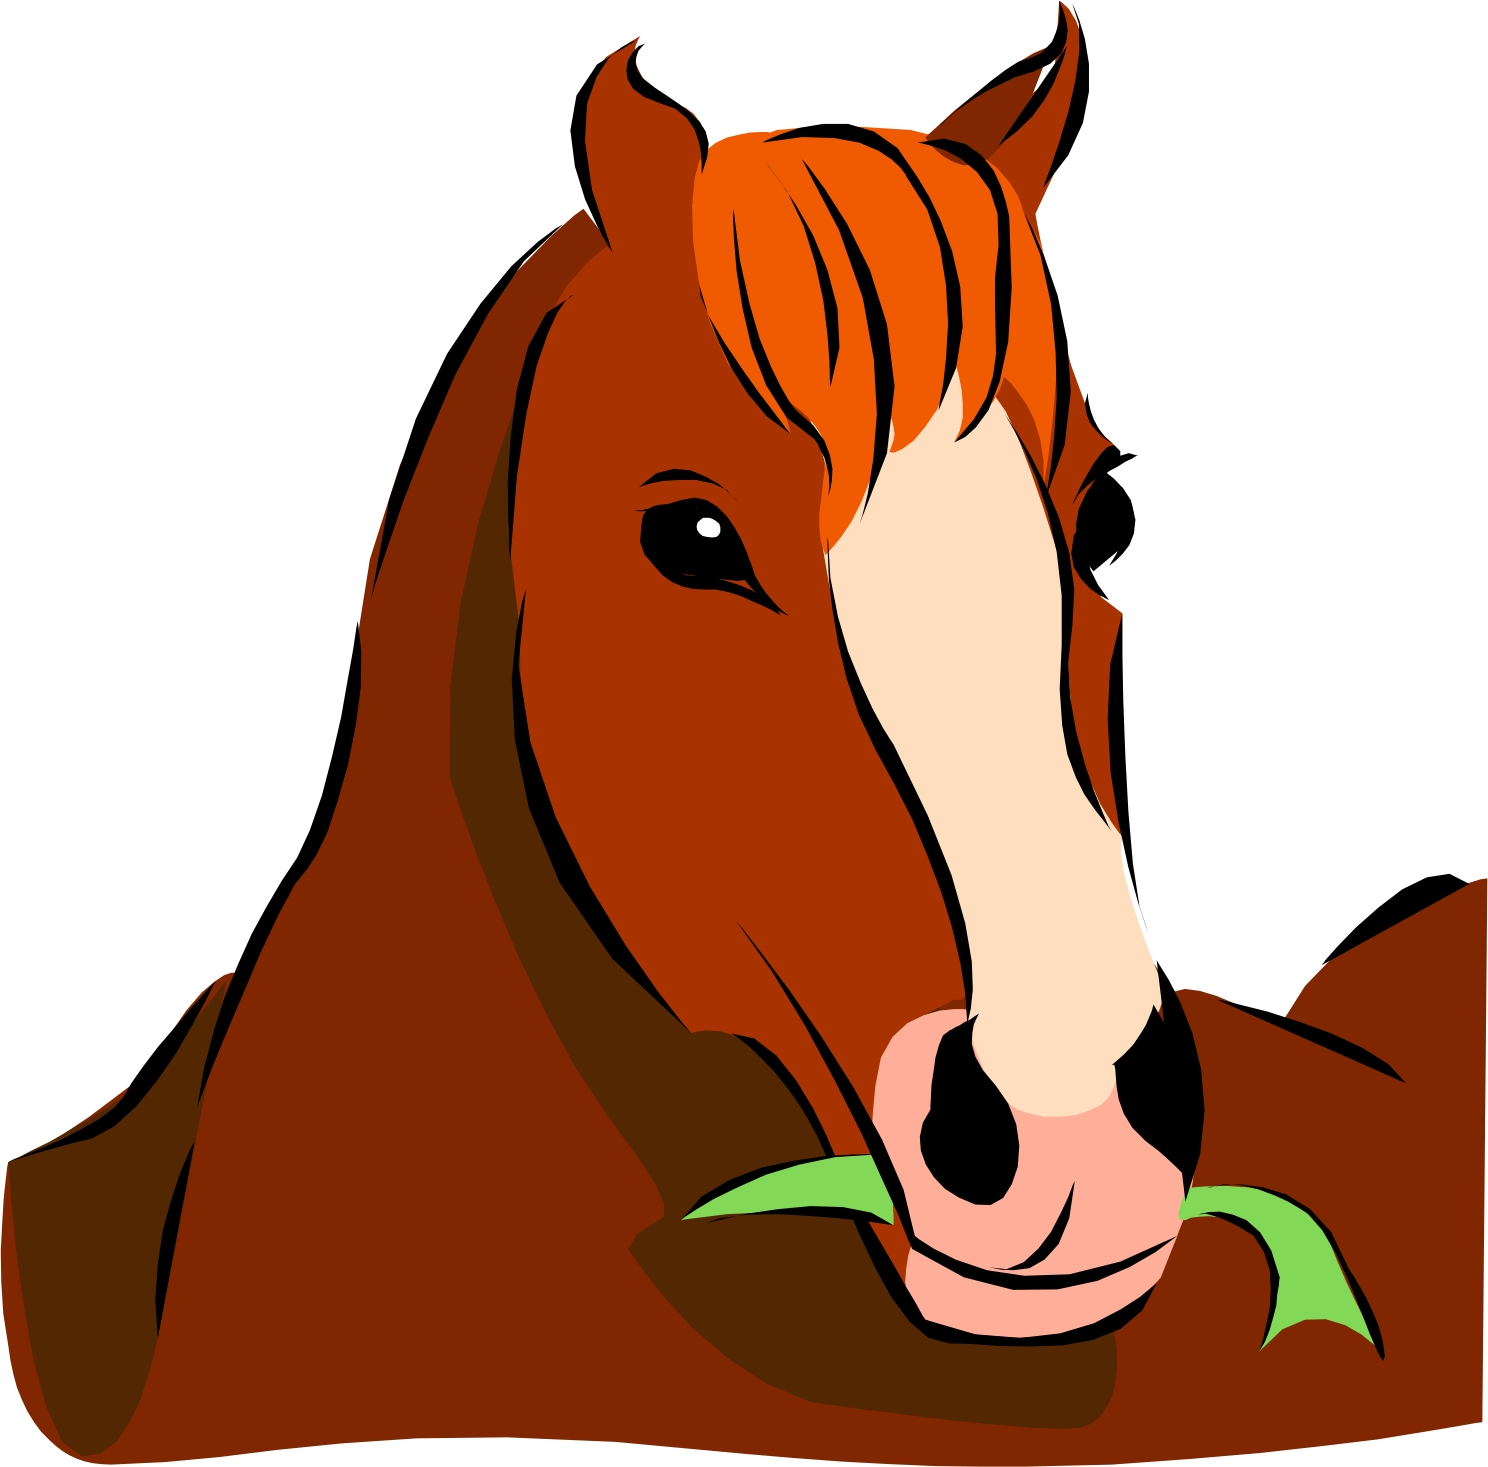 1488x1467 Horse Head Clipart Craft Projects, Animals Clipart